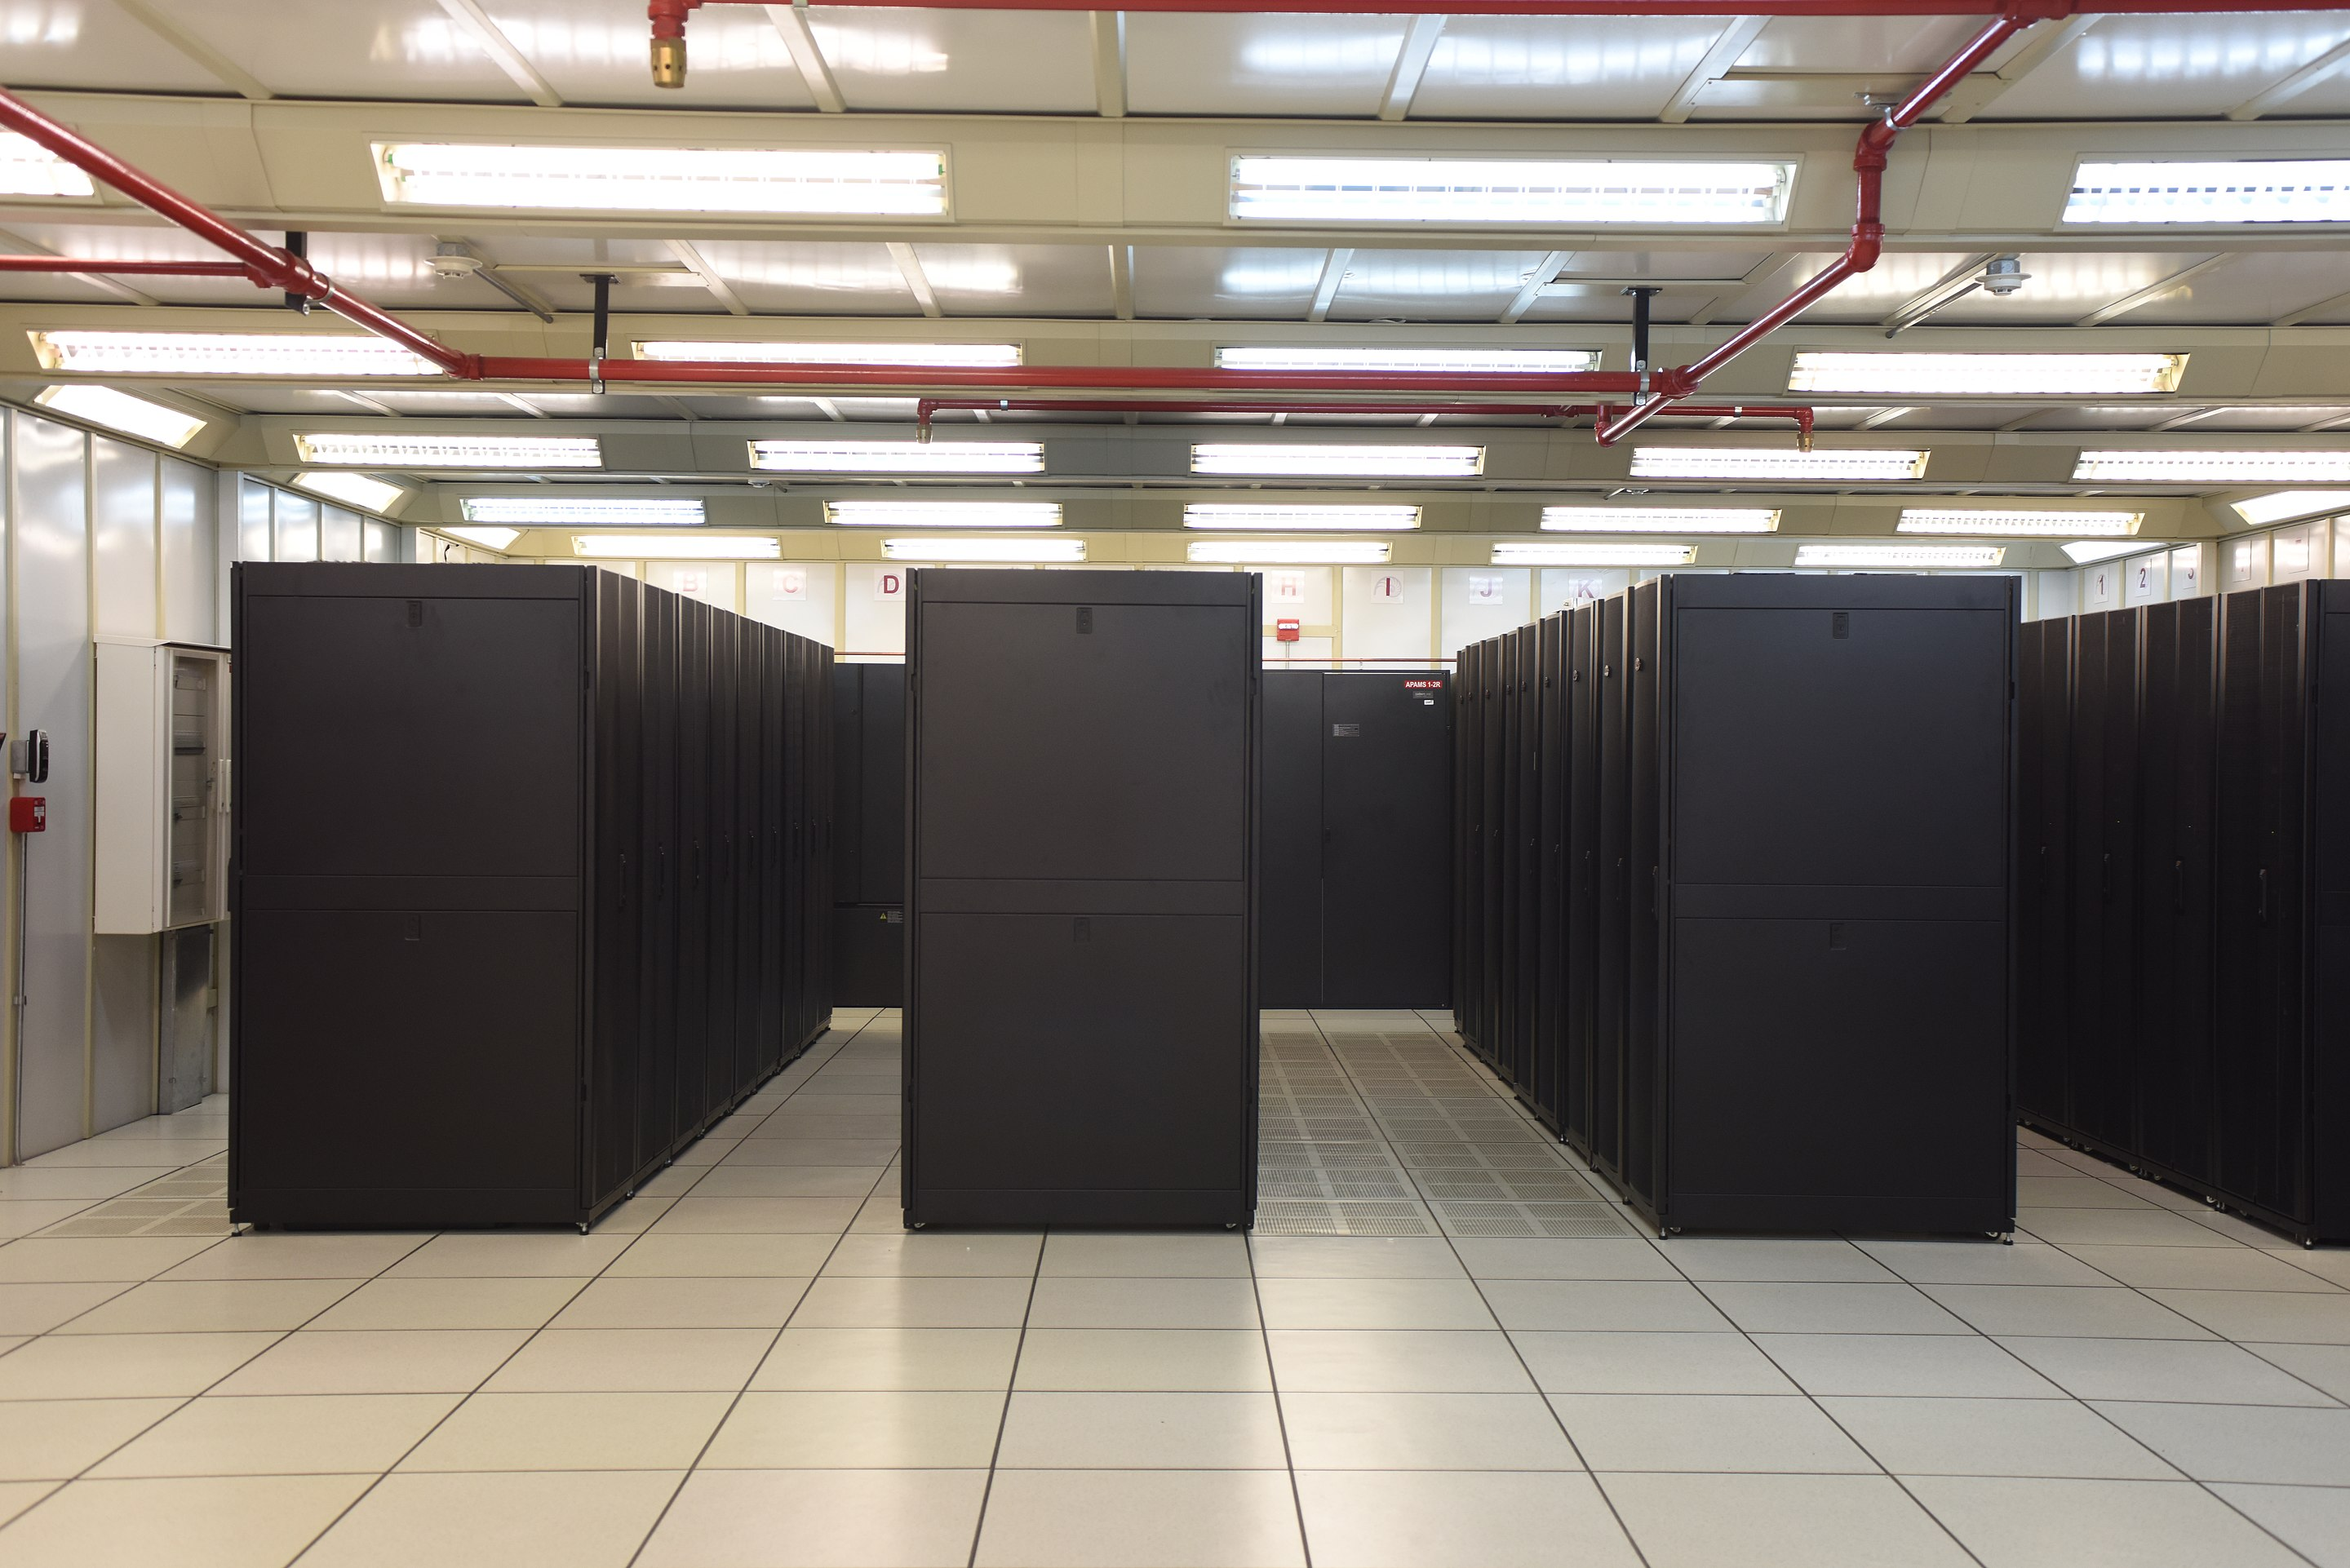 A data center containing a bunch of racks for servers